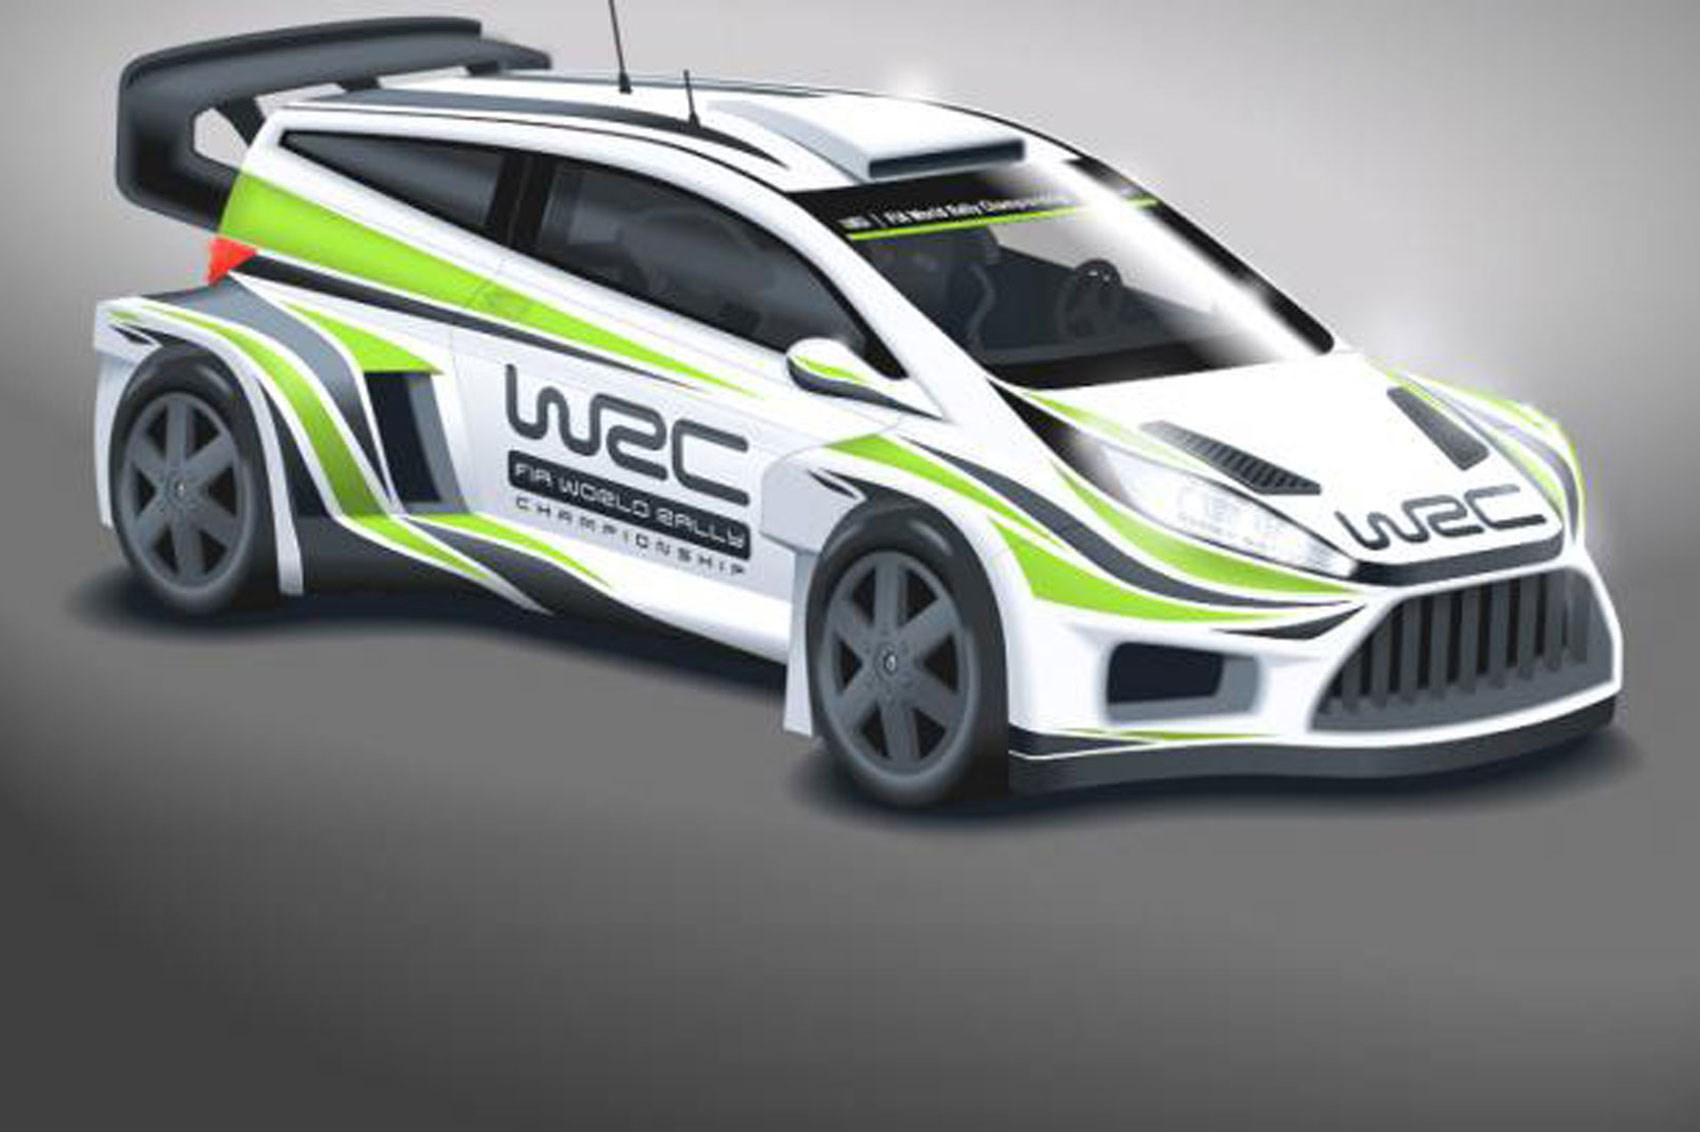 Ultrablogus  Splendid Wild New Look For Wrc Cars In  By Car Magazine With Fair Wrc Cars Will Get Wider Bodies Bigger Wings And More Power For  With Enchanting Rsx Interior Swap Also  Impala Interior In Addition Interior Mirror Glue And Audi A Nougat Brown Interior As Well As Rx Interior Additionally Interior Light For Cars From Carmagazinecouk With Ultrablogus  Fair Wild New Look For Wrc Cars In  By Car Magazine With Enchanting Wrc Cars Will Get Wider Bodies Bigger Wings And More Power For  And Splendid Rsx Interior Swap Also  Impala Interior In Addition Interior Mirror Glue From Carmagazinecouk